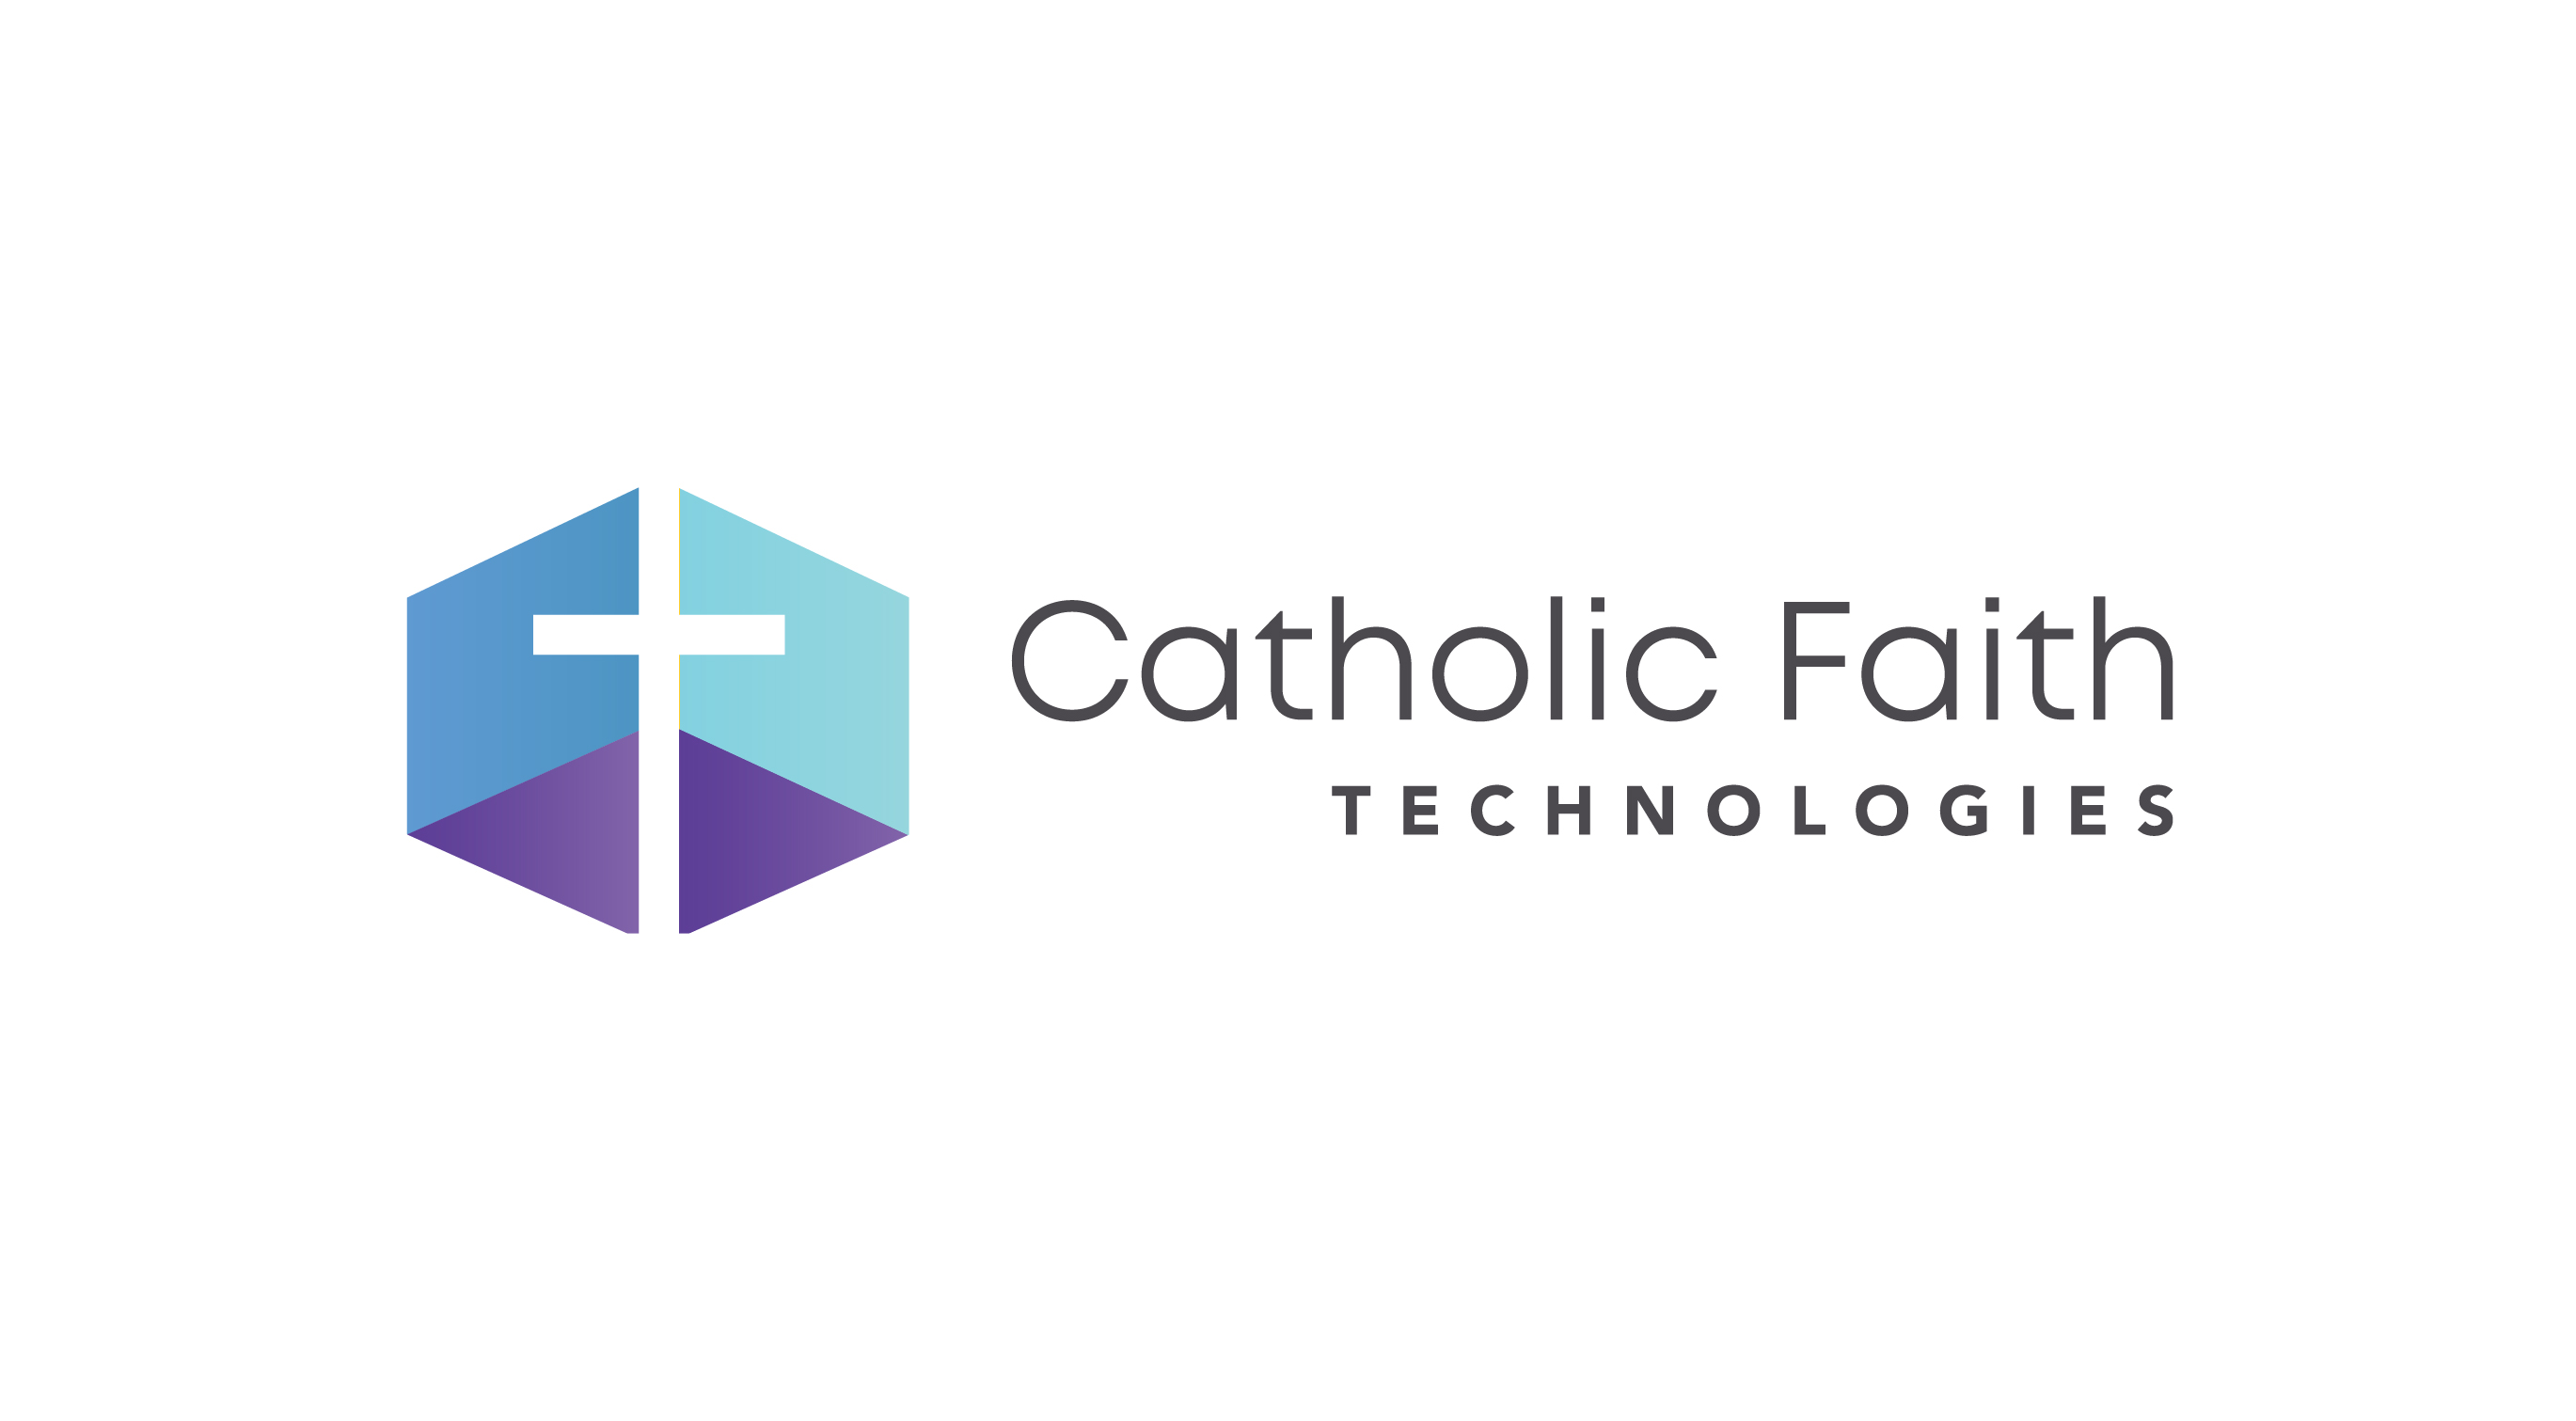 Catholic Faith Technologies